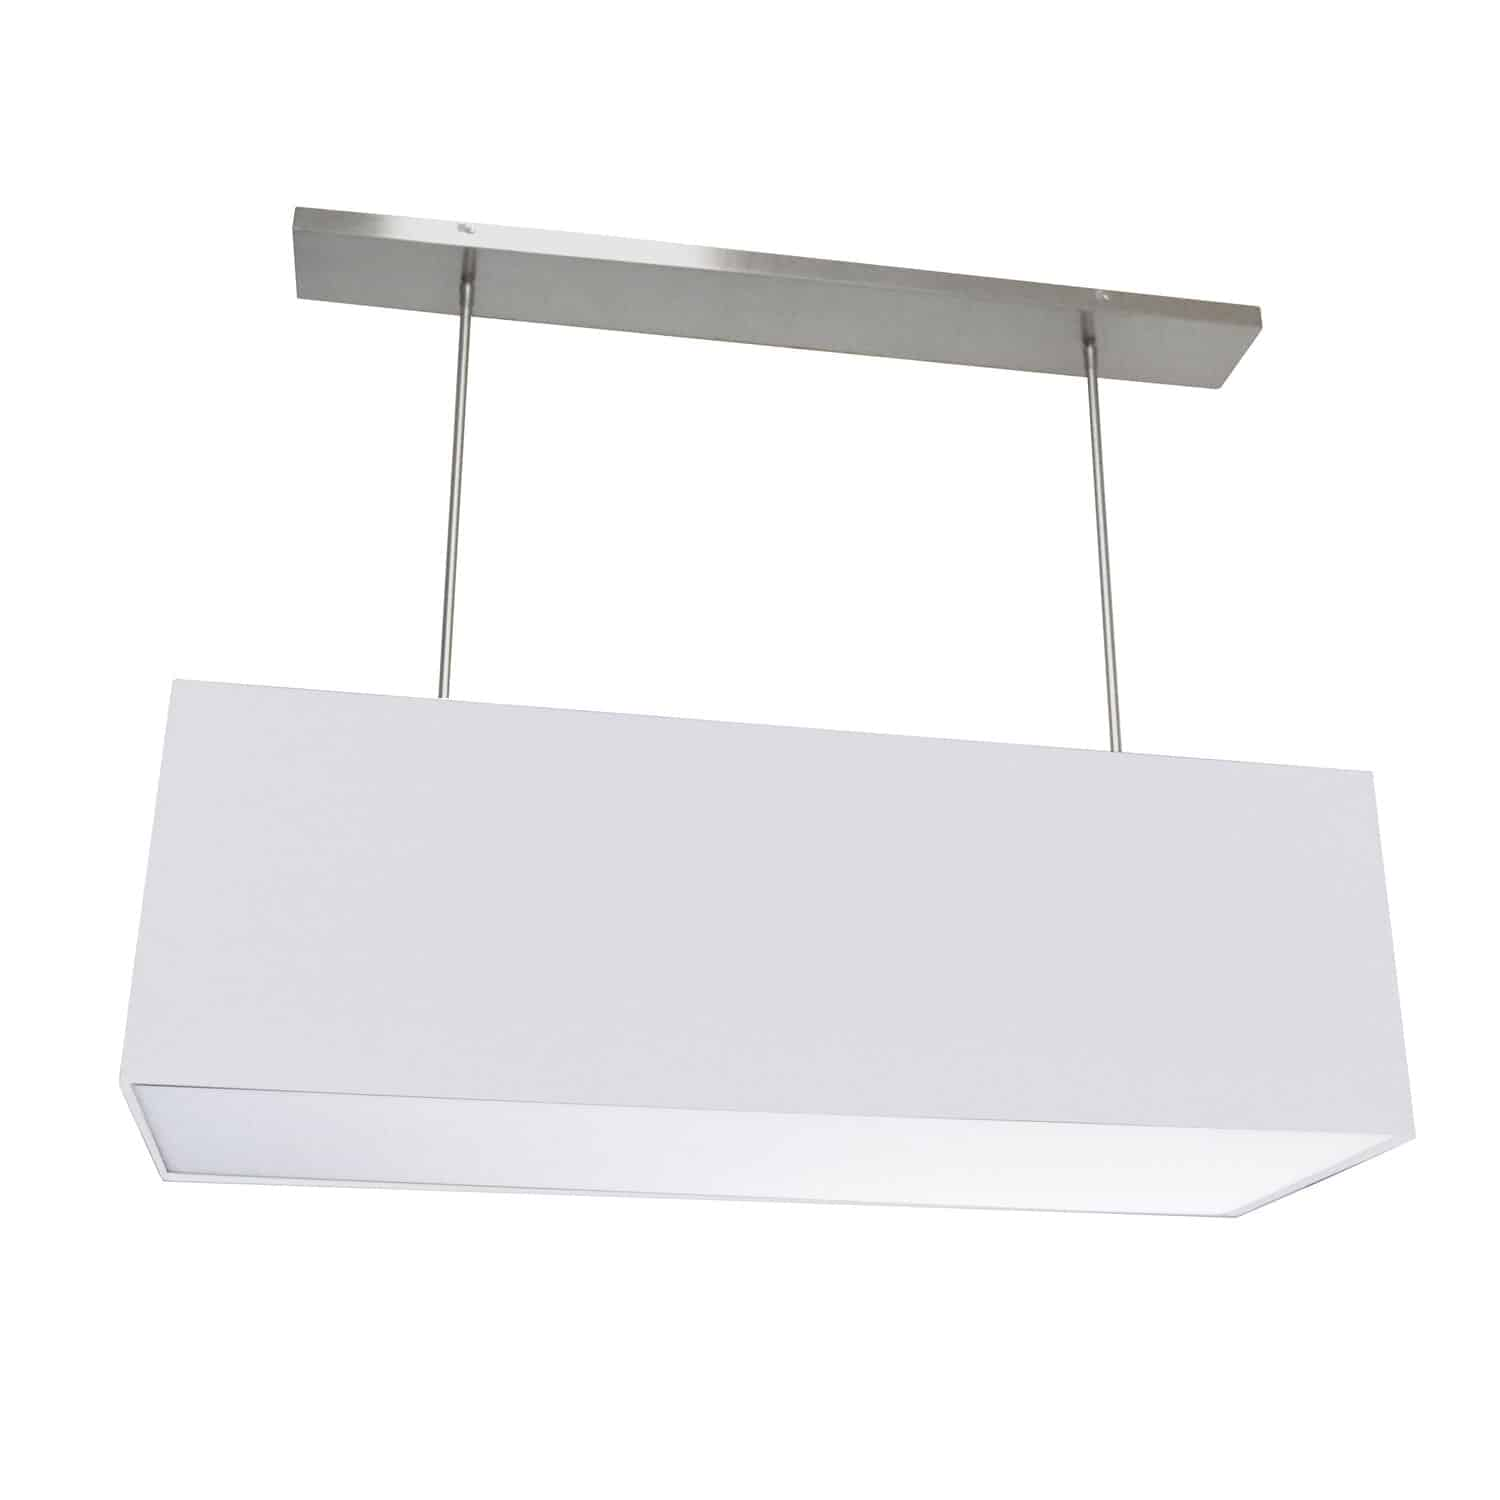 4 Light Oversized Rect Pendant, Large White w/ Fabric Diffuser